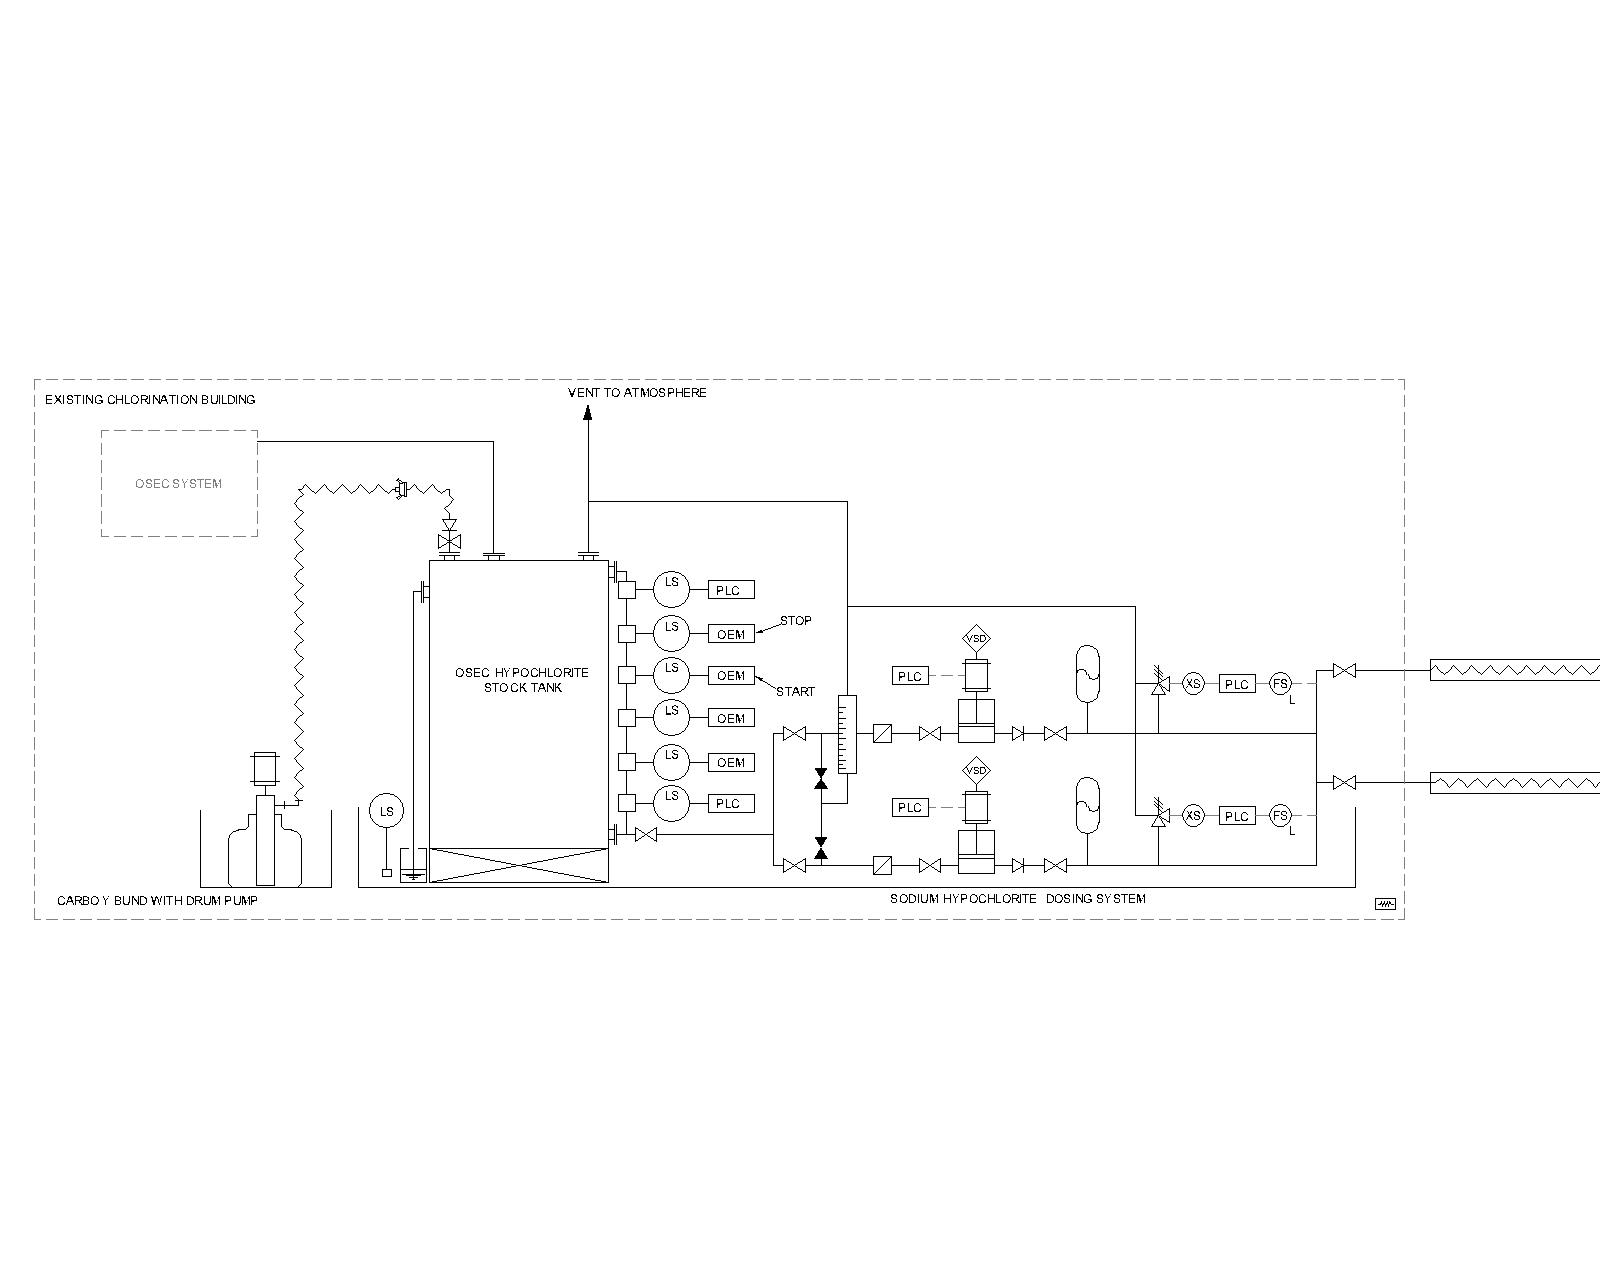 Pipework-and-instrumentation-pid